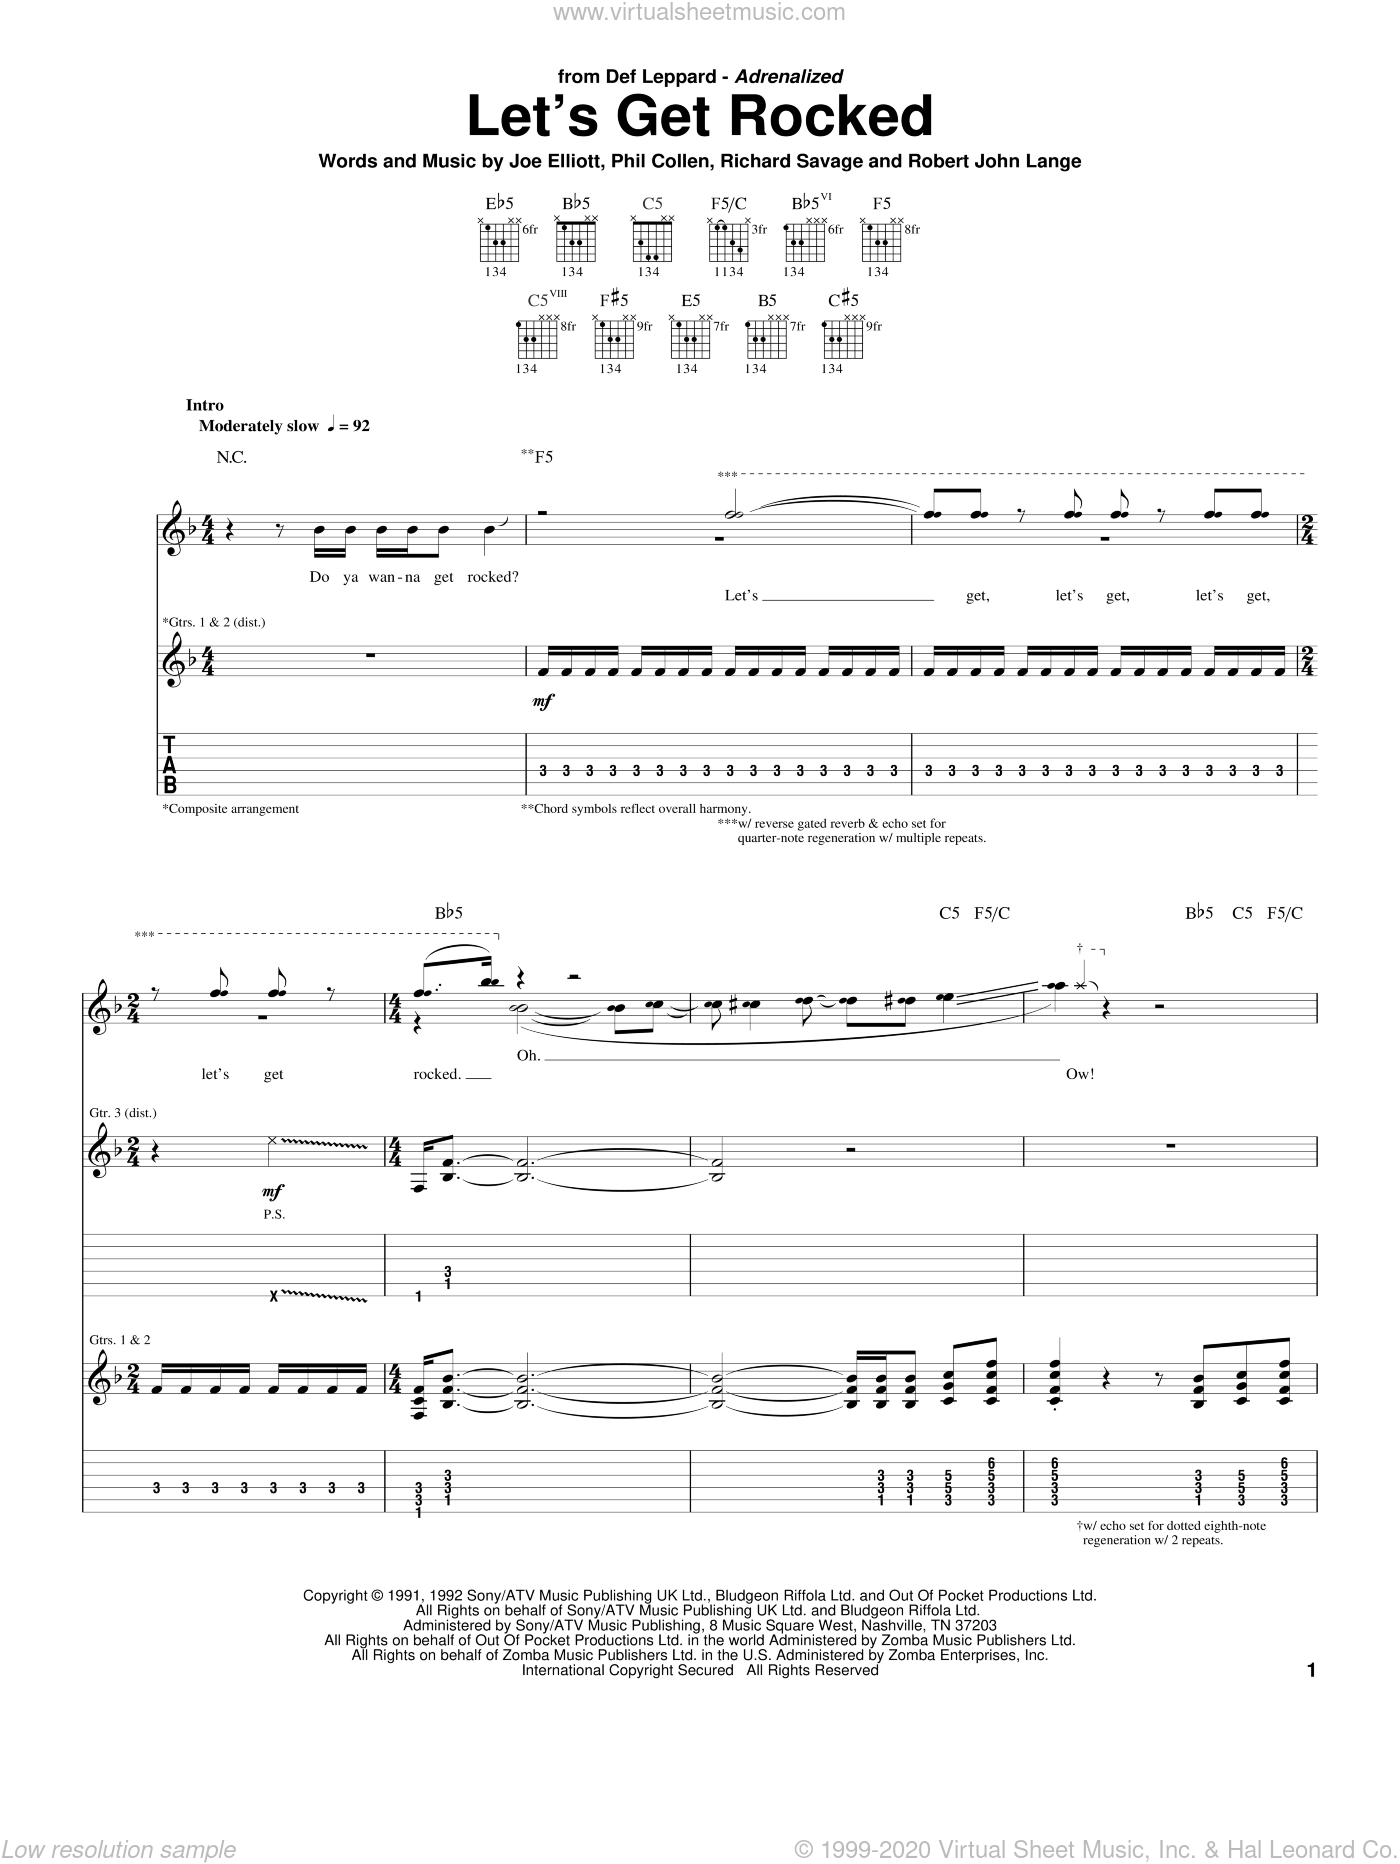 Let's Get Rocked sheet music for guitar (tablature) by Def Leppard, Joe Elliott, Phil Collen, Richard Savage and Robert John Lange, intermediate